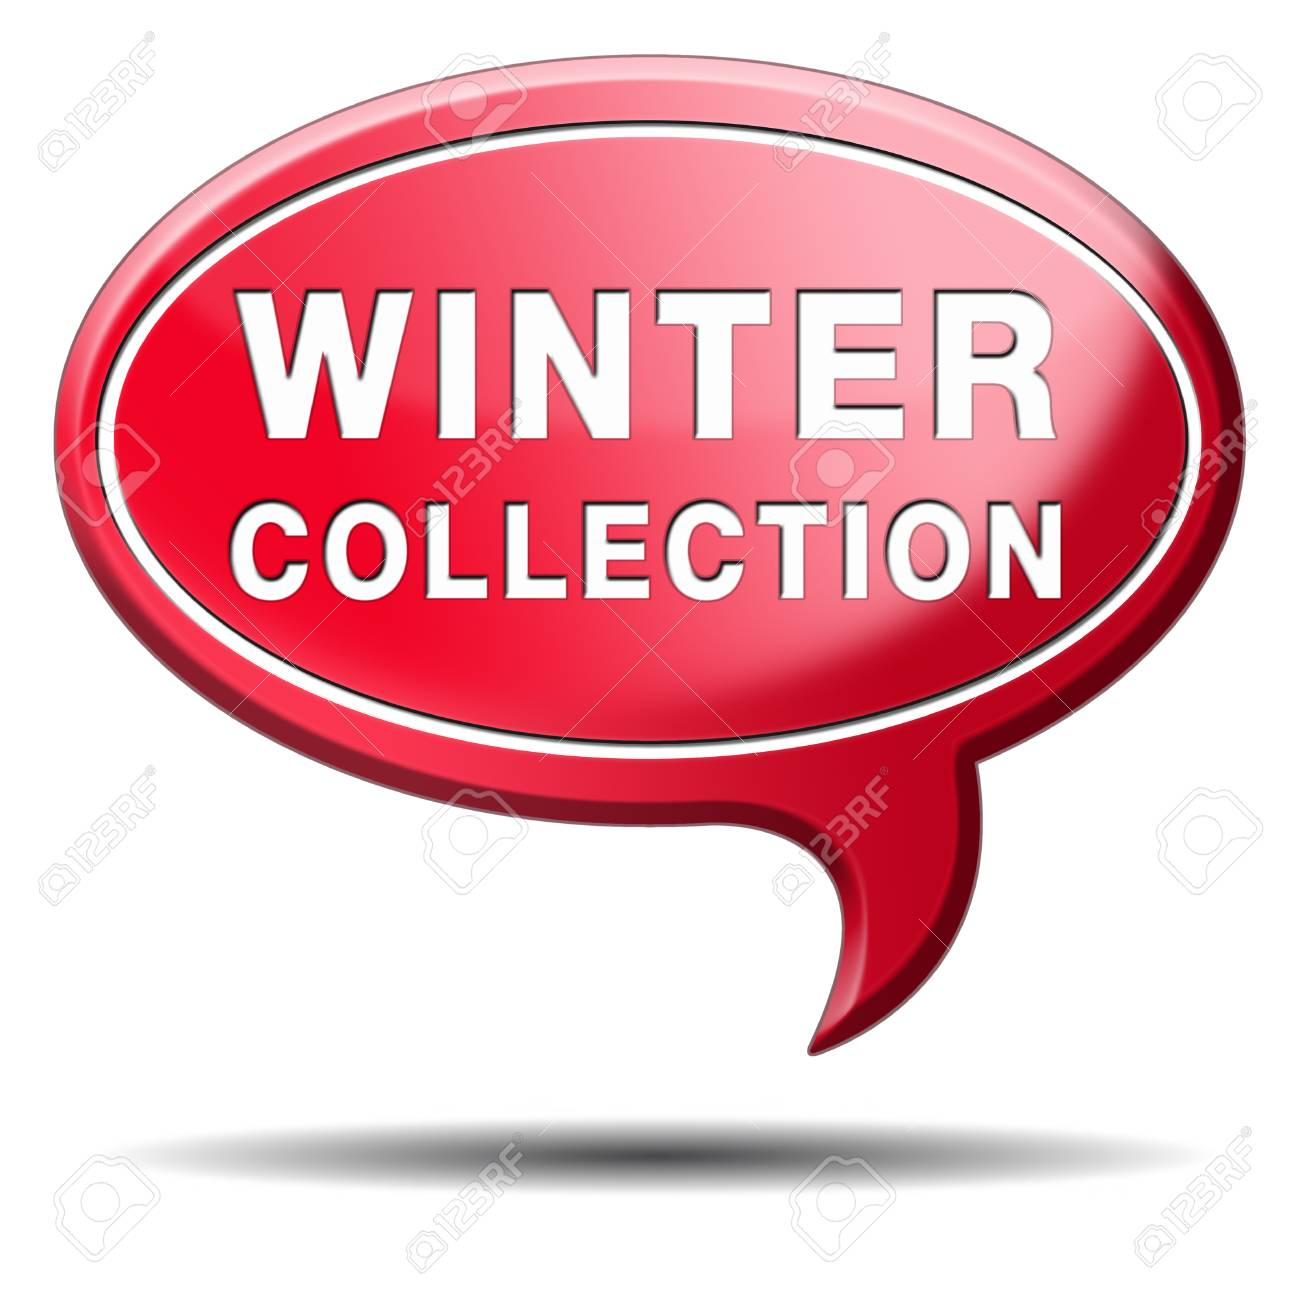 winter collection new latest fashion style icon or label Stock Photo - 22822168